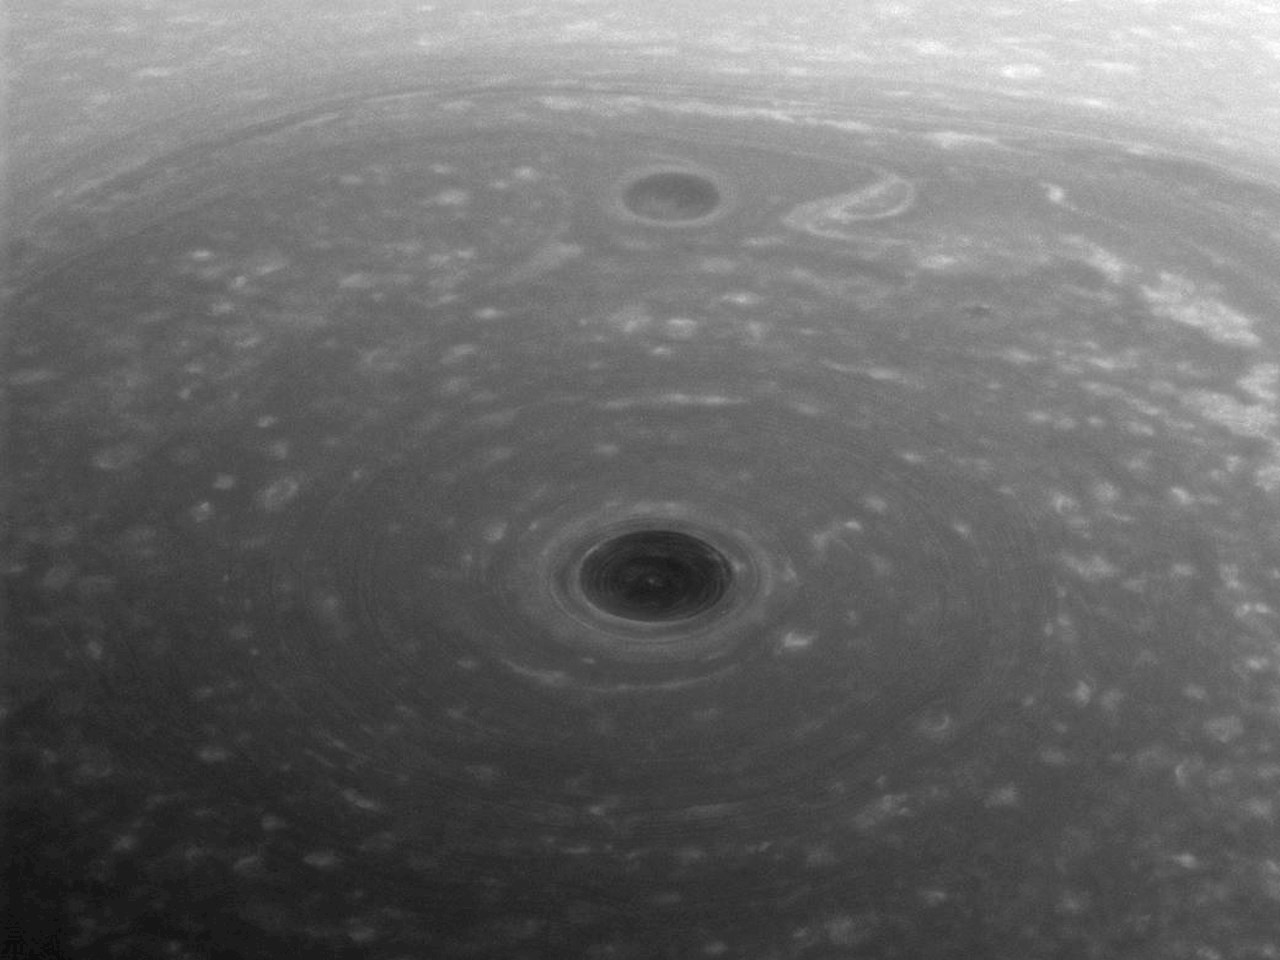 These turbulent clouds are on top of the world at Saturn